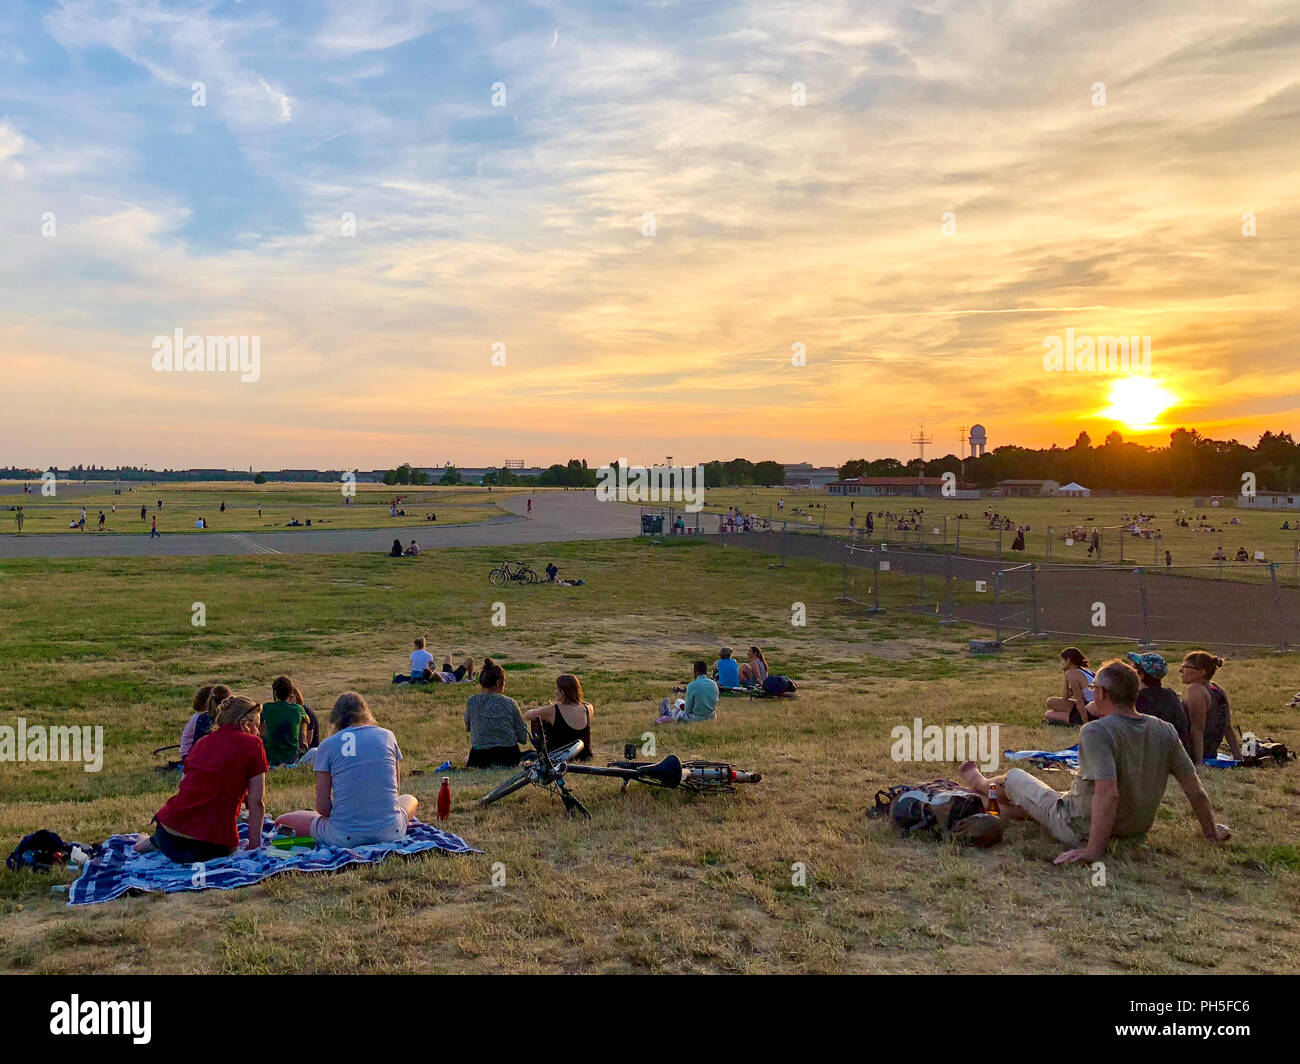 People relaxing and watching a summer sunset at Tempelhofer Feld in Berlin, Germany in 2018. - Stock Image